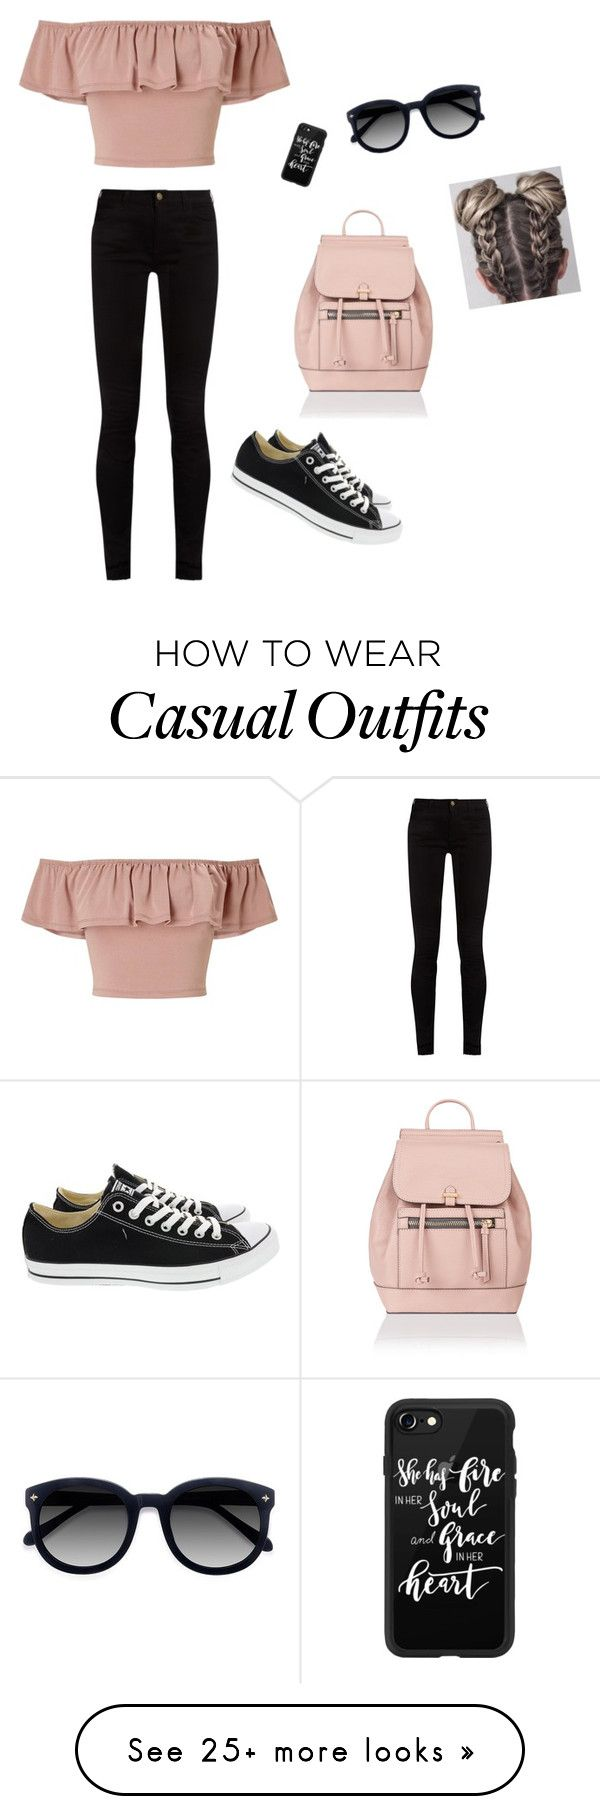 """Casual day"" by avanabanana on Polyvore featuring Miss Selfridge, Gucci, Ace, Casetify, Converse and Accessorize"